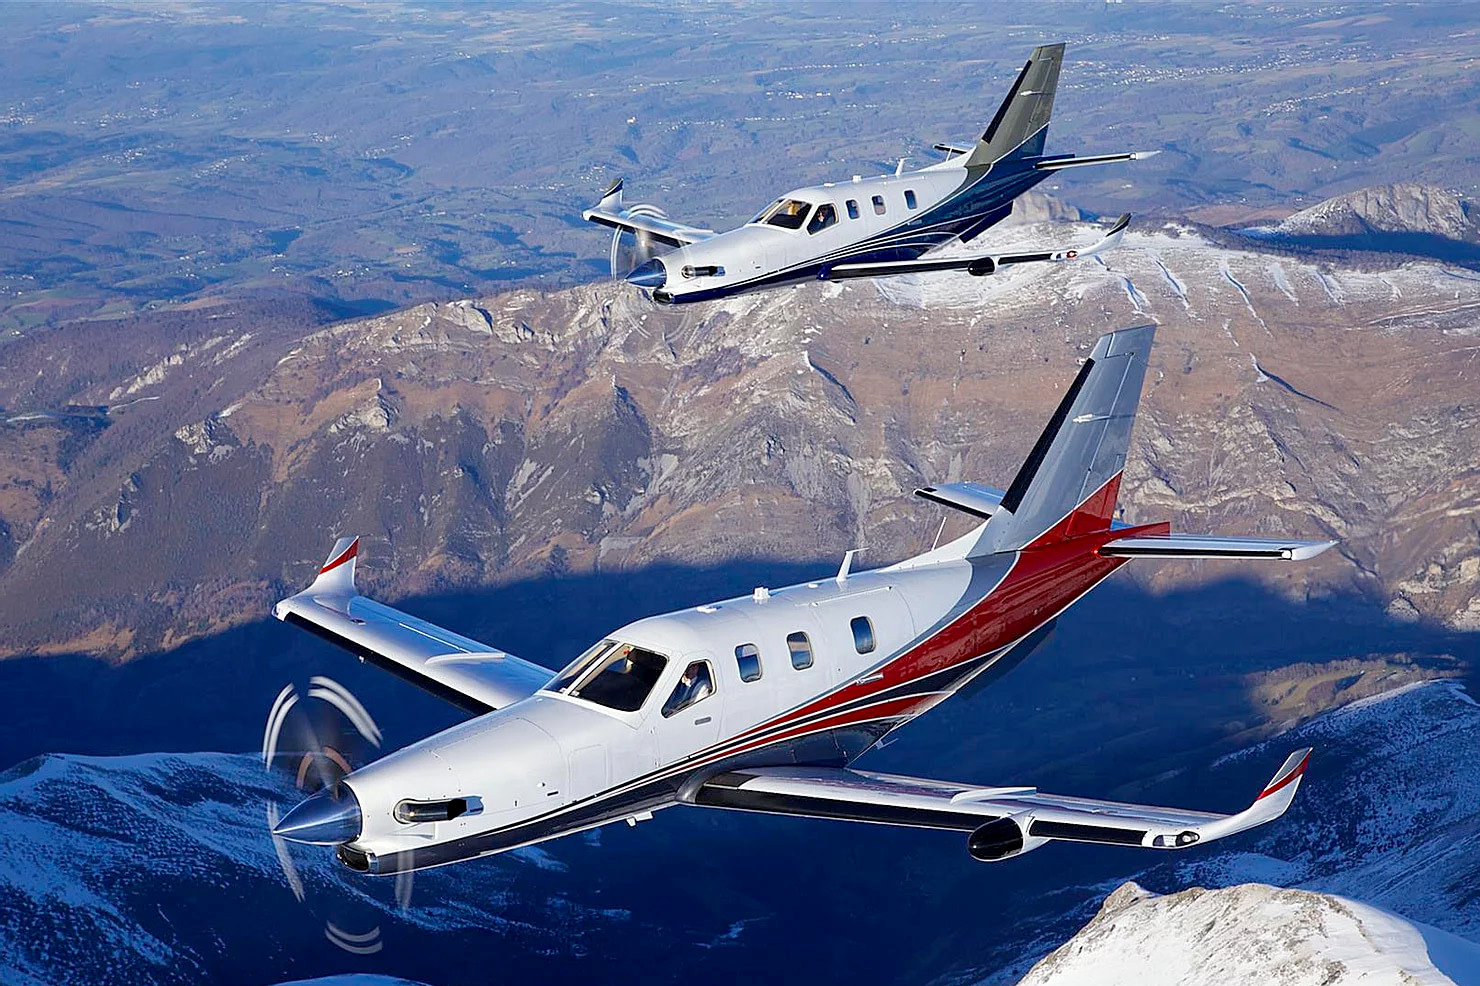 Turboprop - Piston engined aircraft - Partn'Air